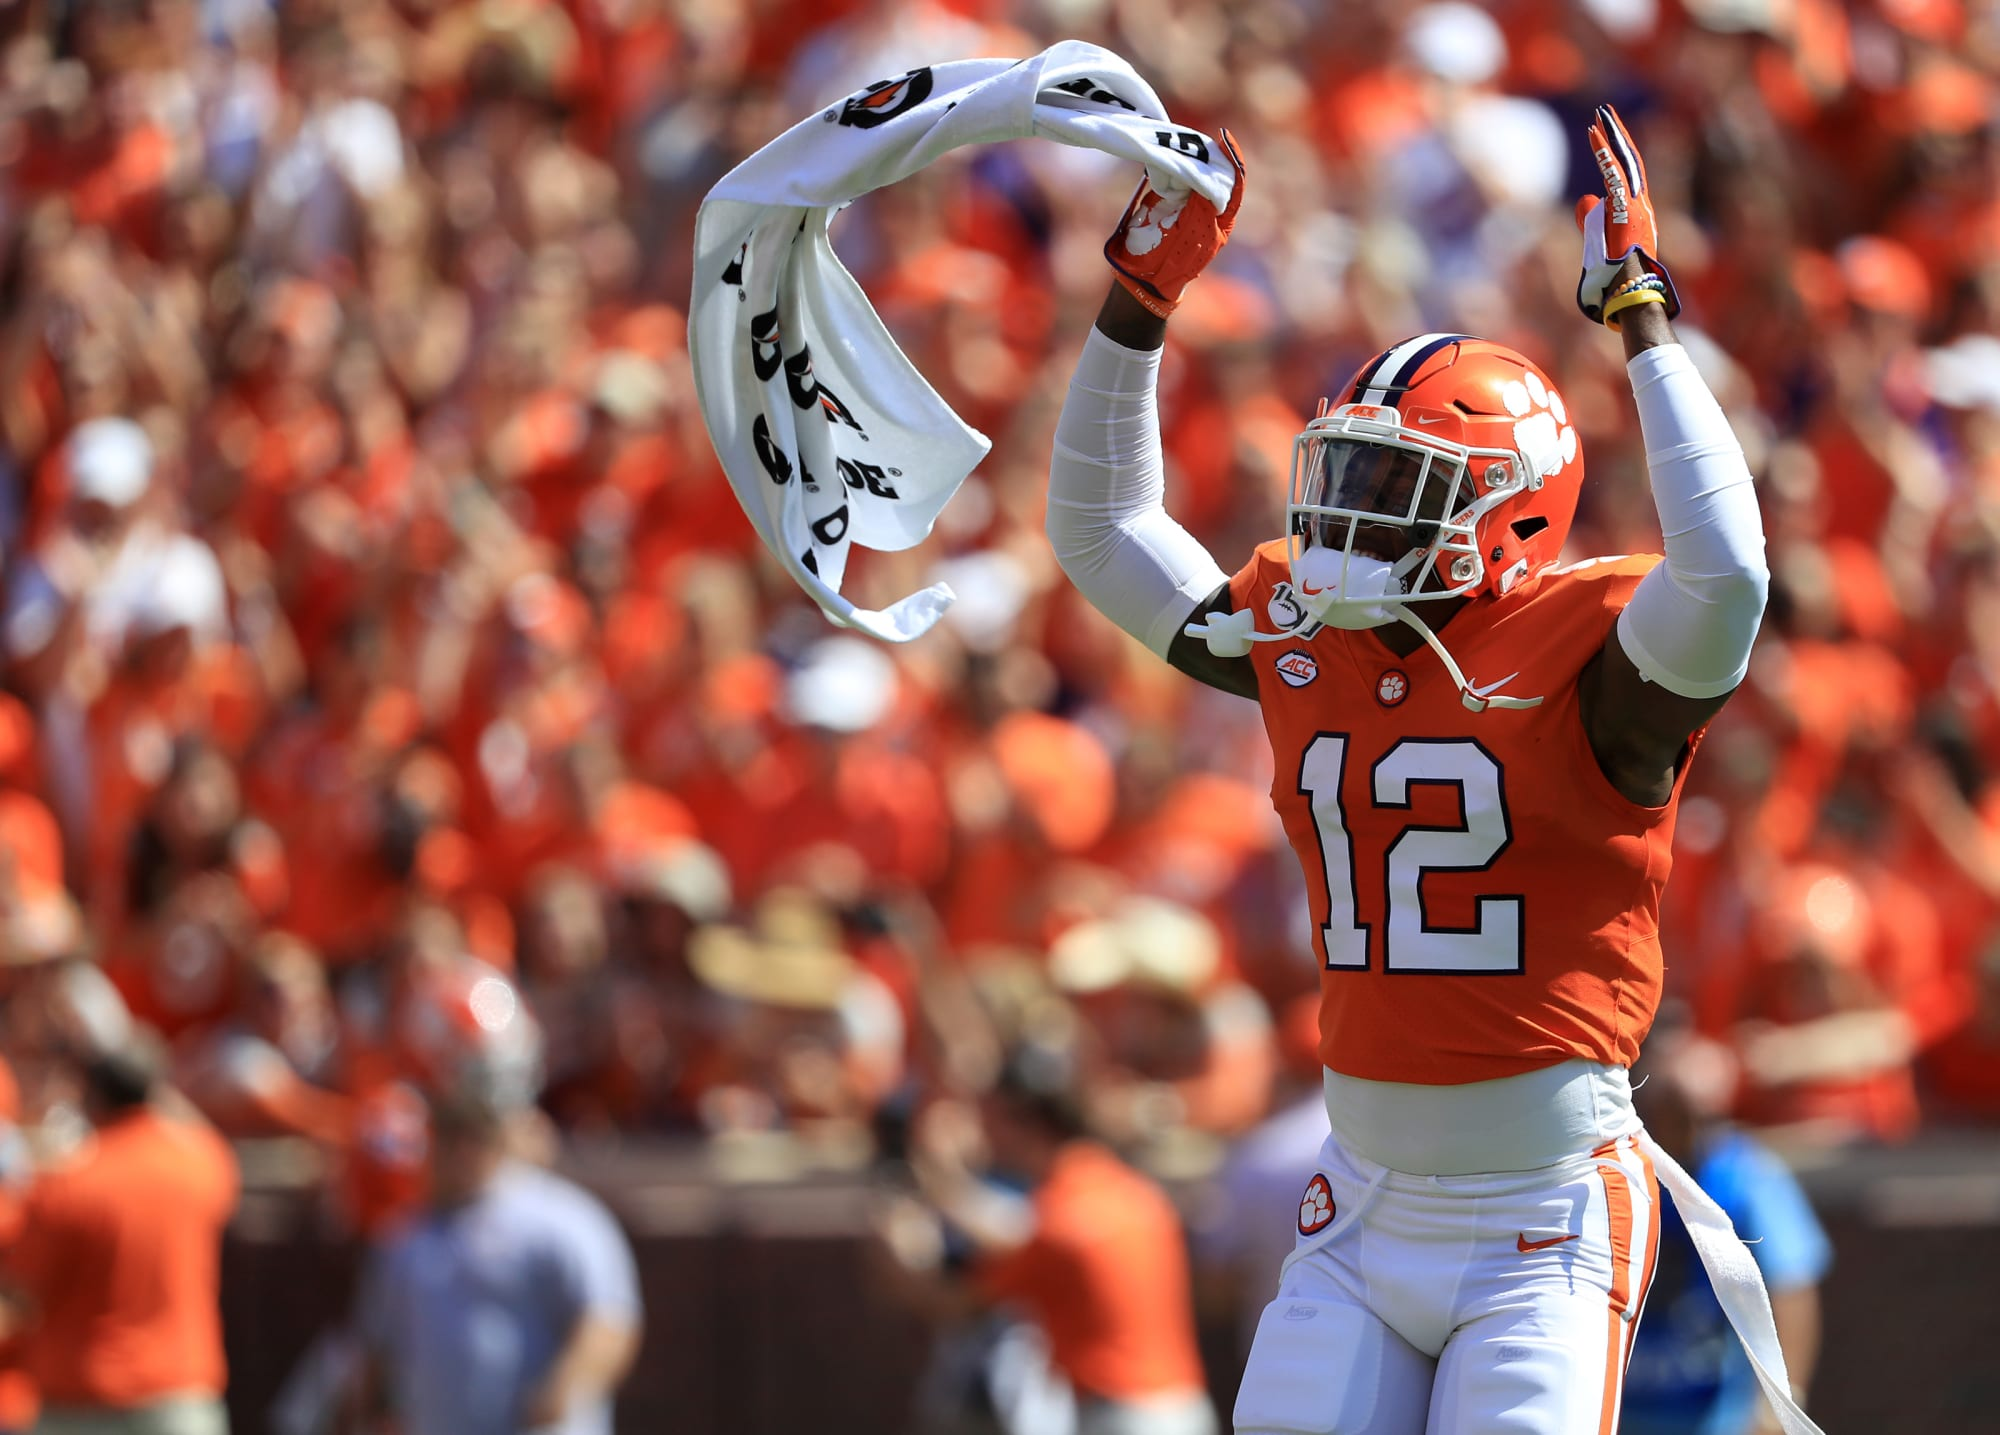 Clemson vs. Wofford: How to Watch, Live Stream Info, More